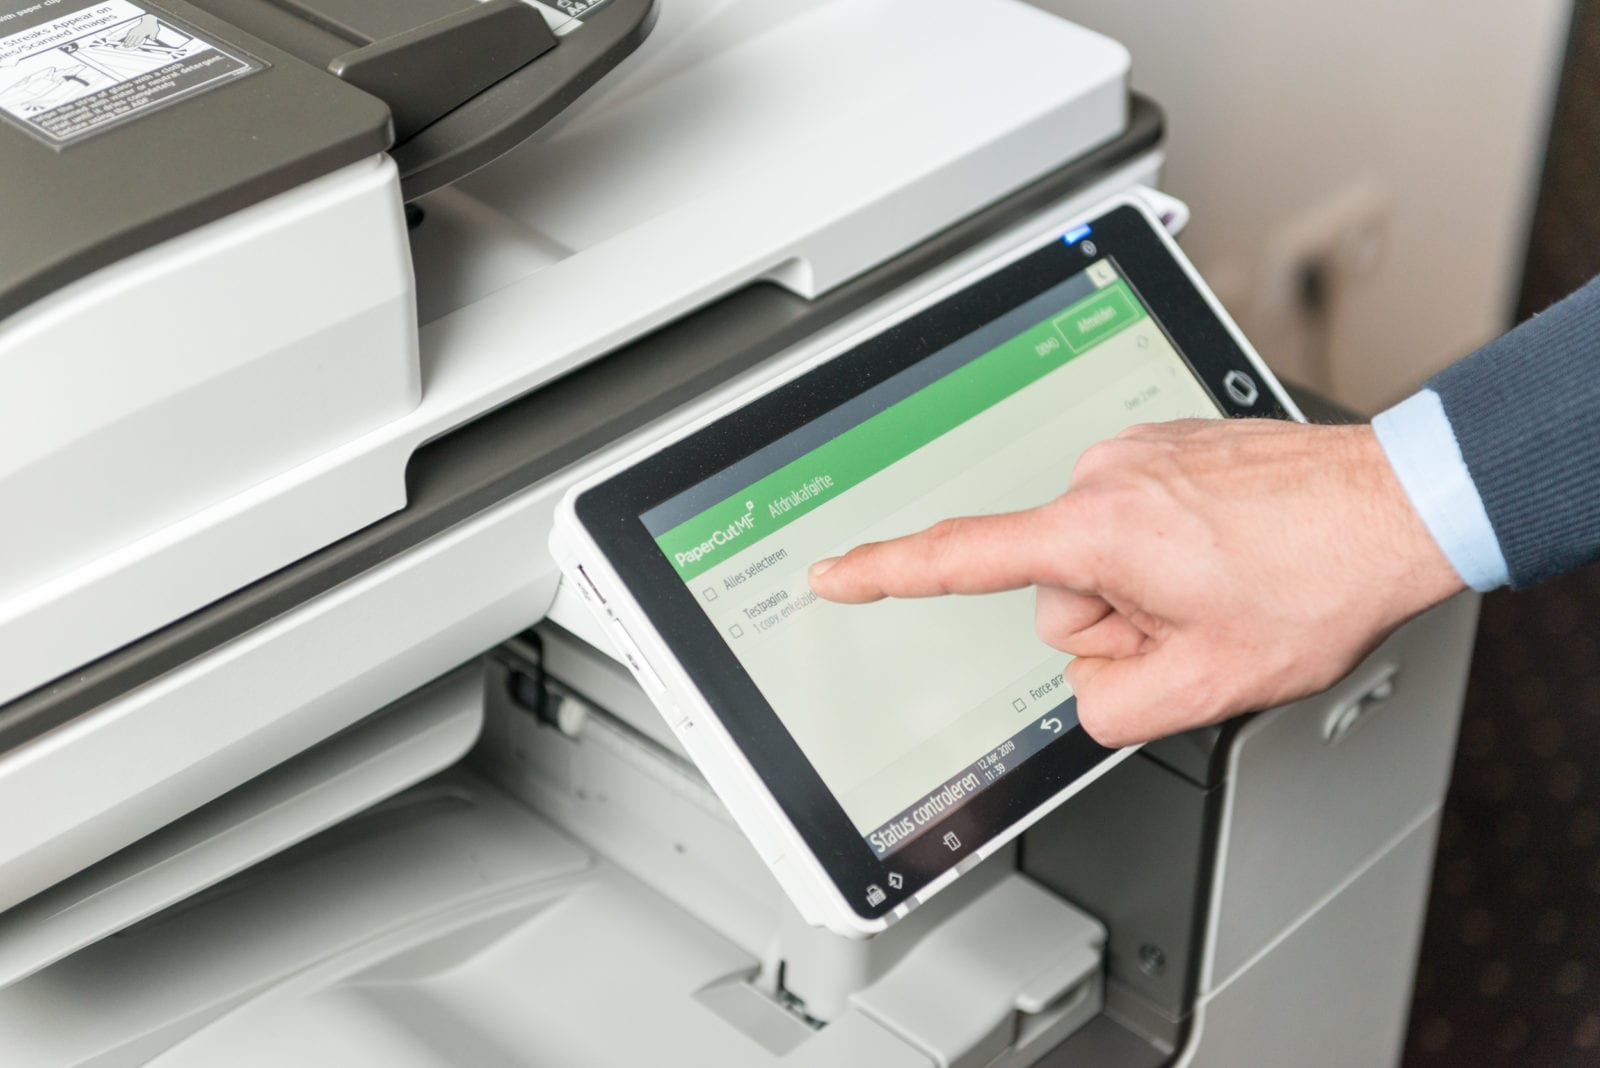 Kyocera software follow me printing voor non-profit toepassingen